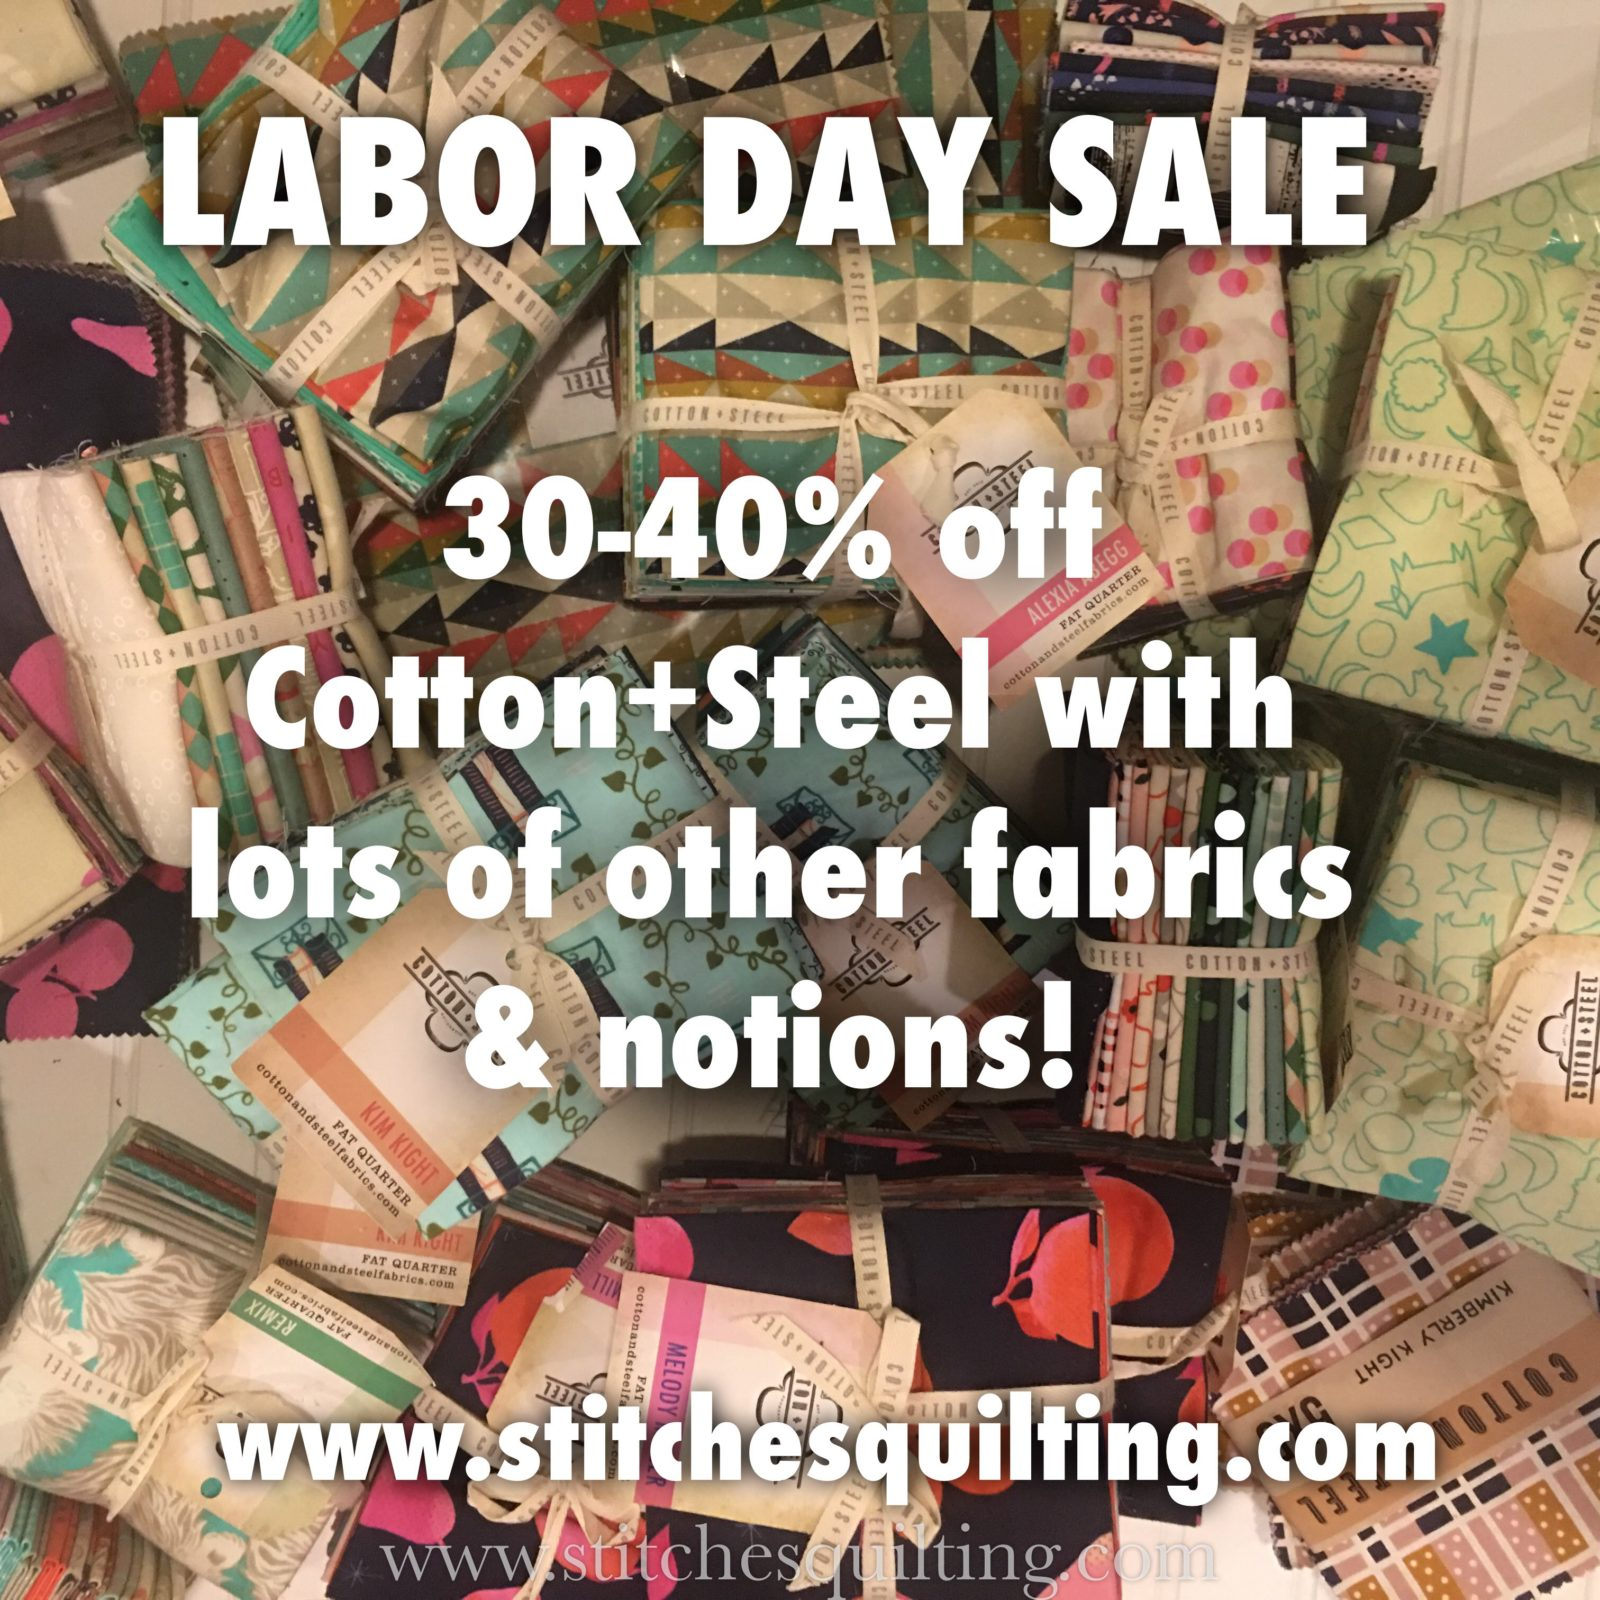 Stitches Quilting Fabric Labor Day Sale